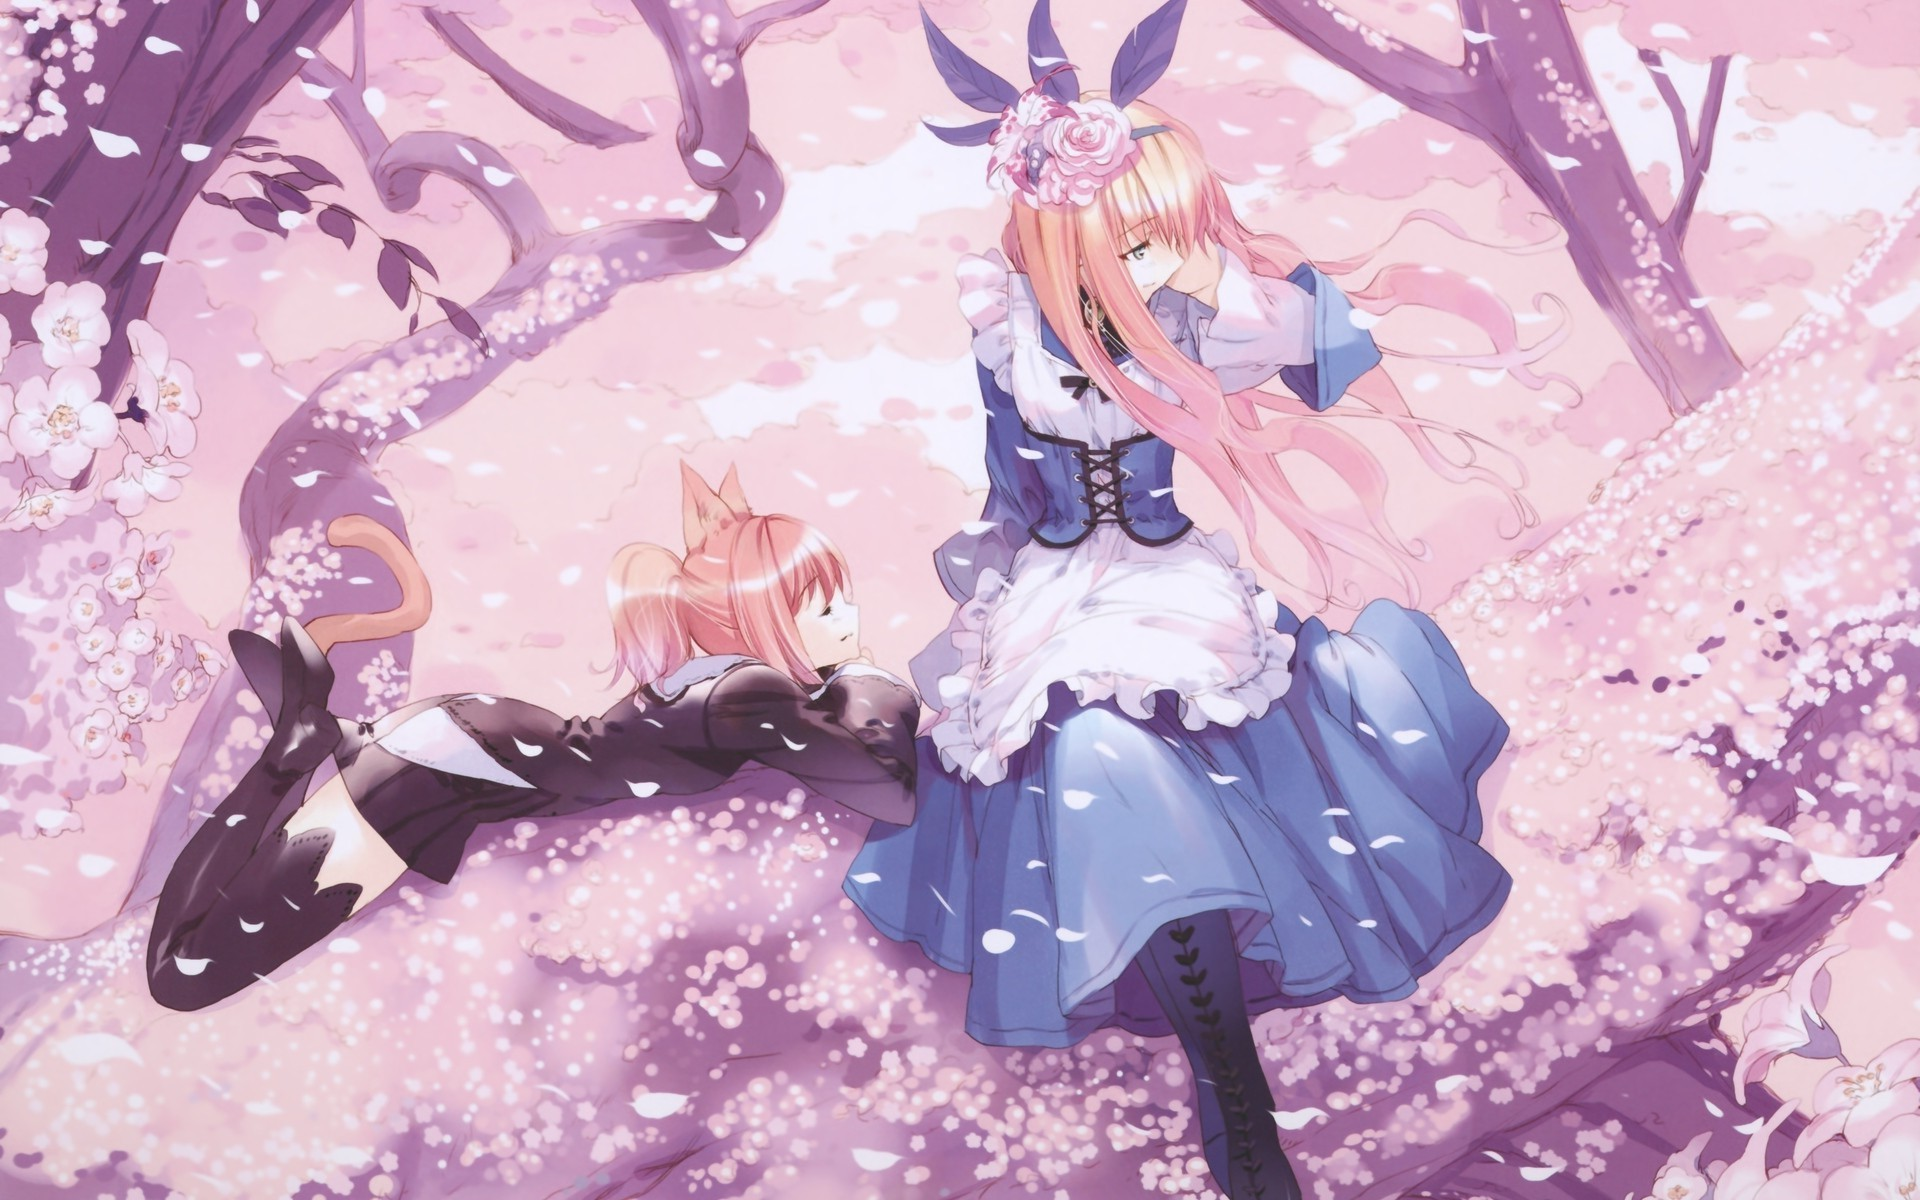 1920x1200 trees, Anime Girls, Cat Ears, Cherry Blossom, Dress, Anime, Alice In  Wonderland Wallpapers HD / Desktop and Mobile Backgrounds